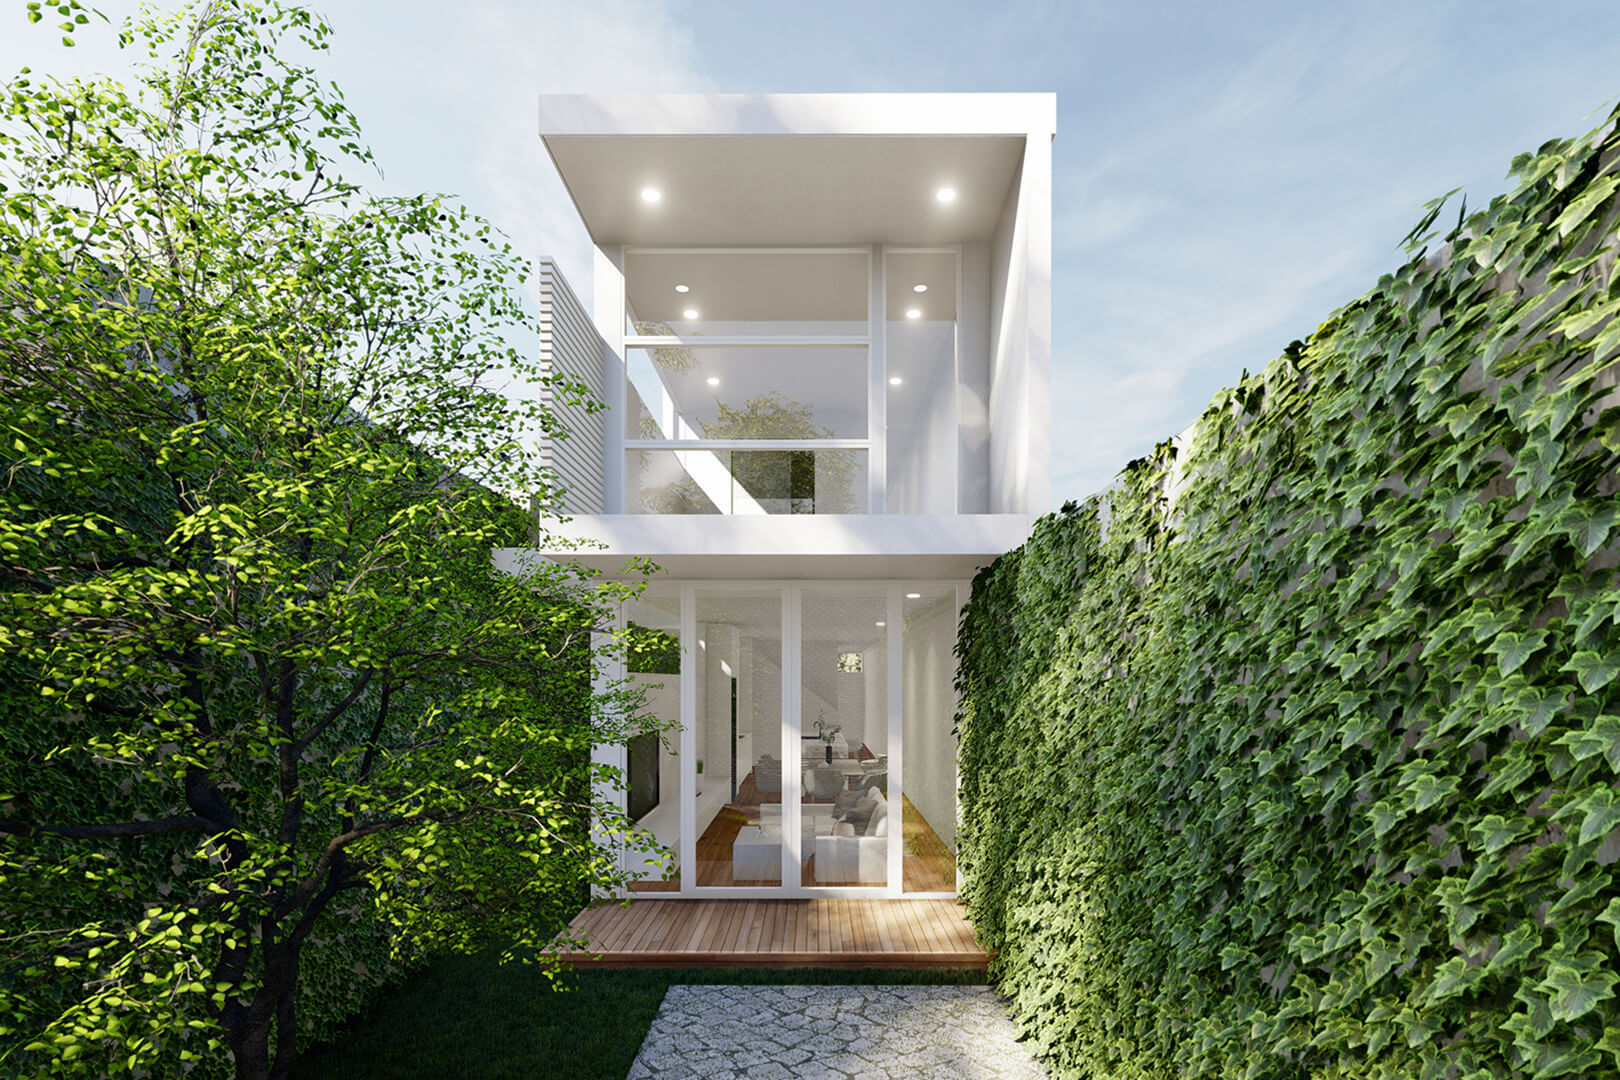 Itty Bitty House in Footscray. Double Storey with rooftop terrace. White weatherboard house. Overlooking Melbourne city skyline. Modern Architecture. designed by Sky Architect Studio